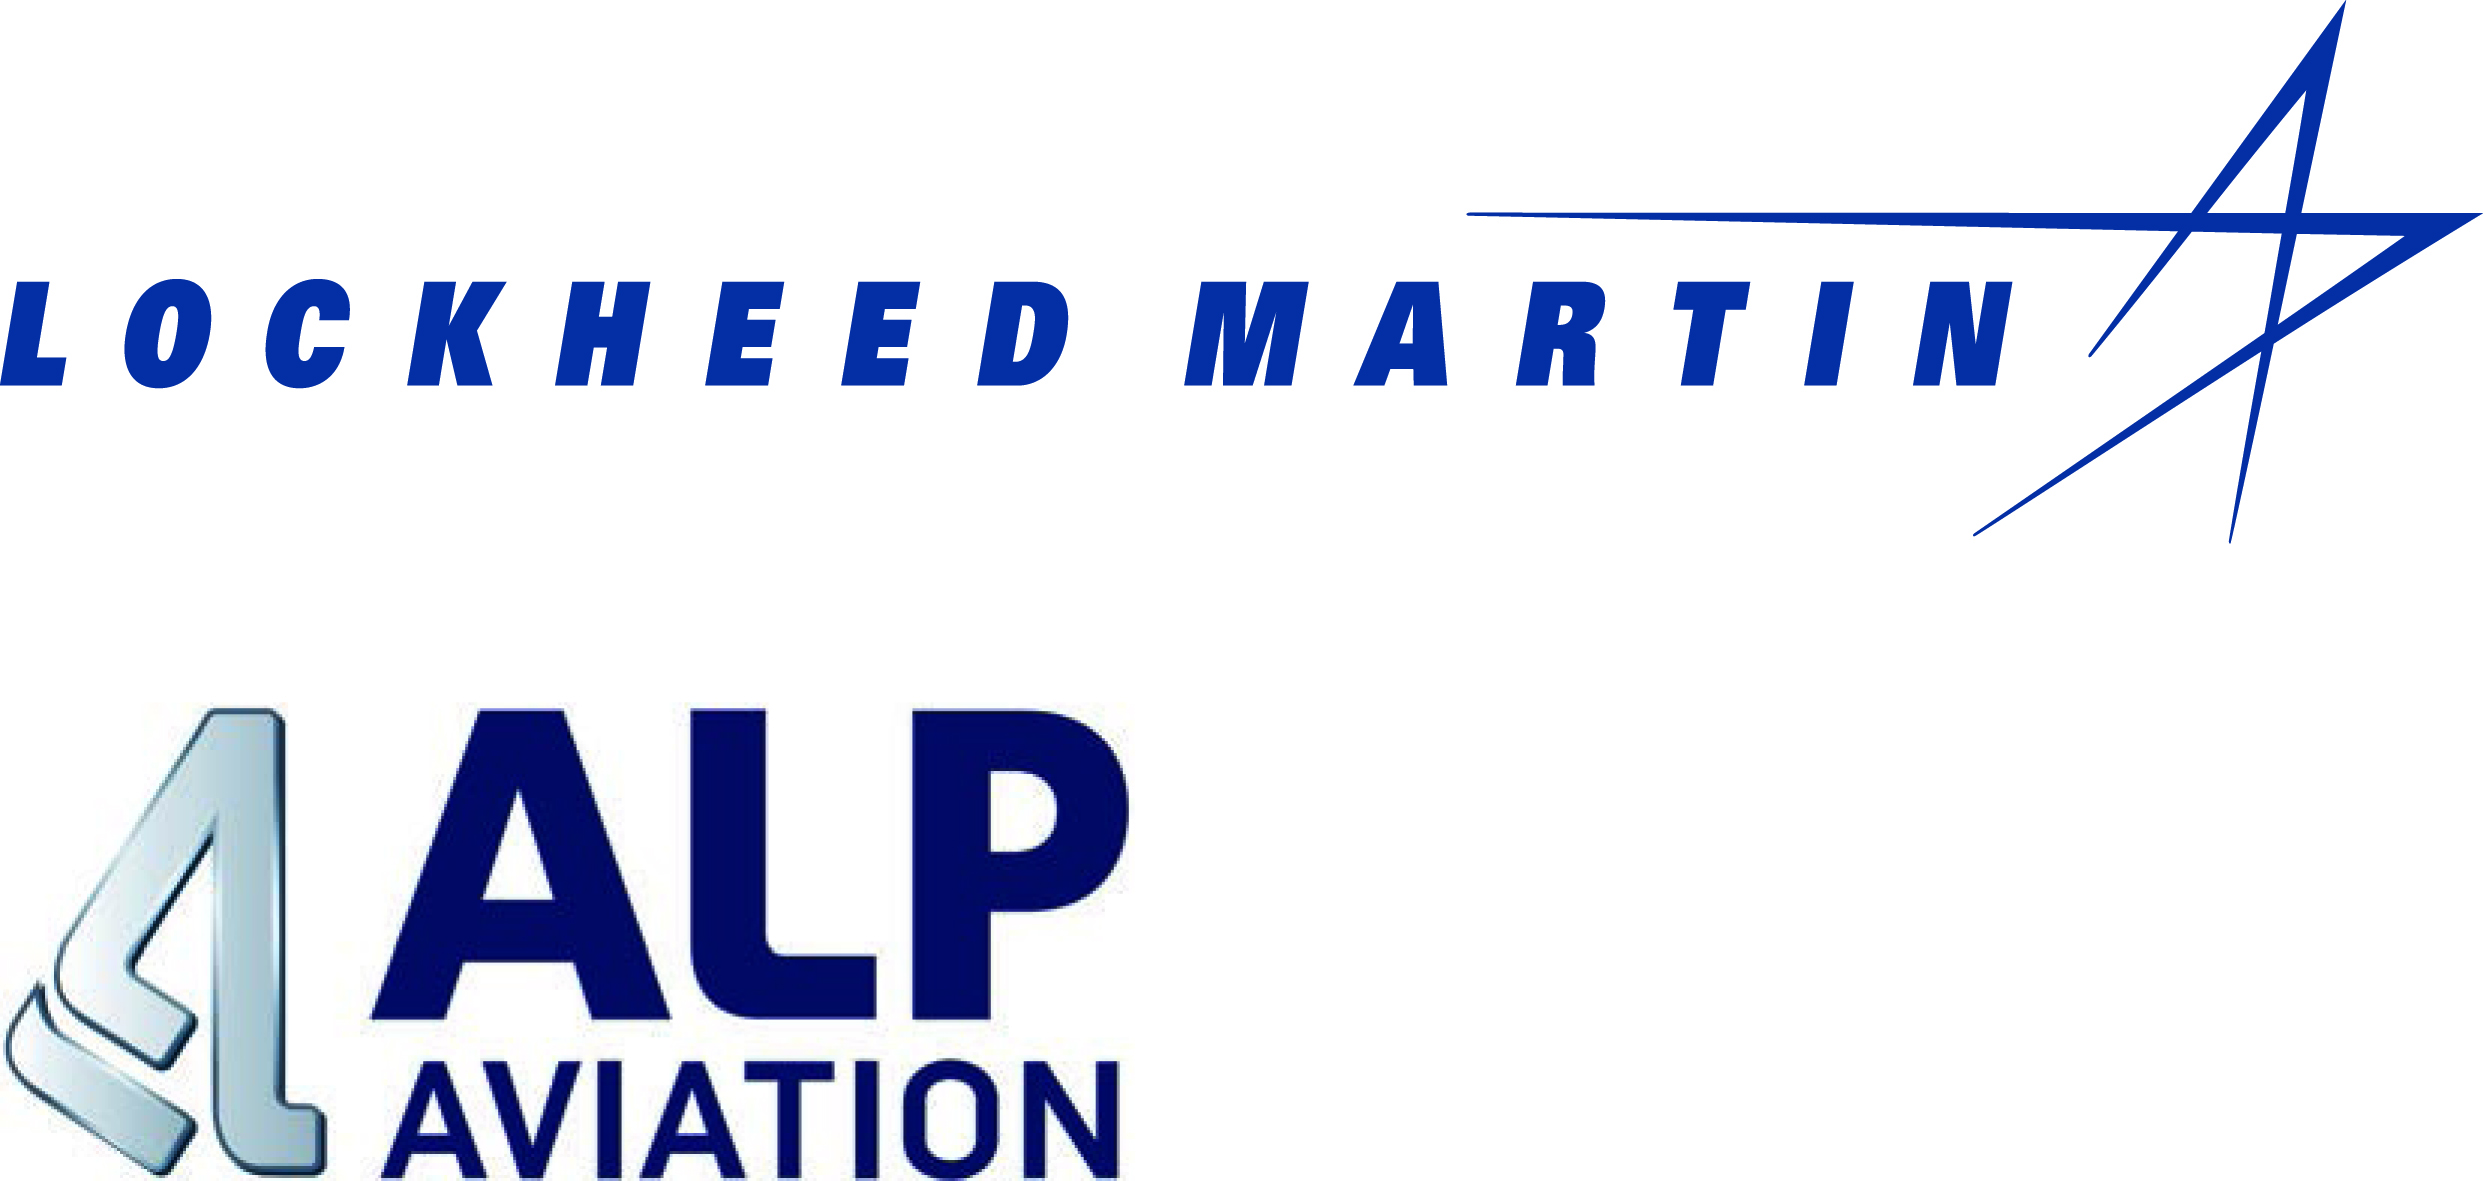 www.lockheedmartin.com - Please click on the image to discover more